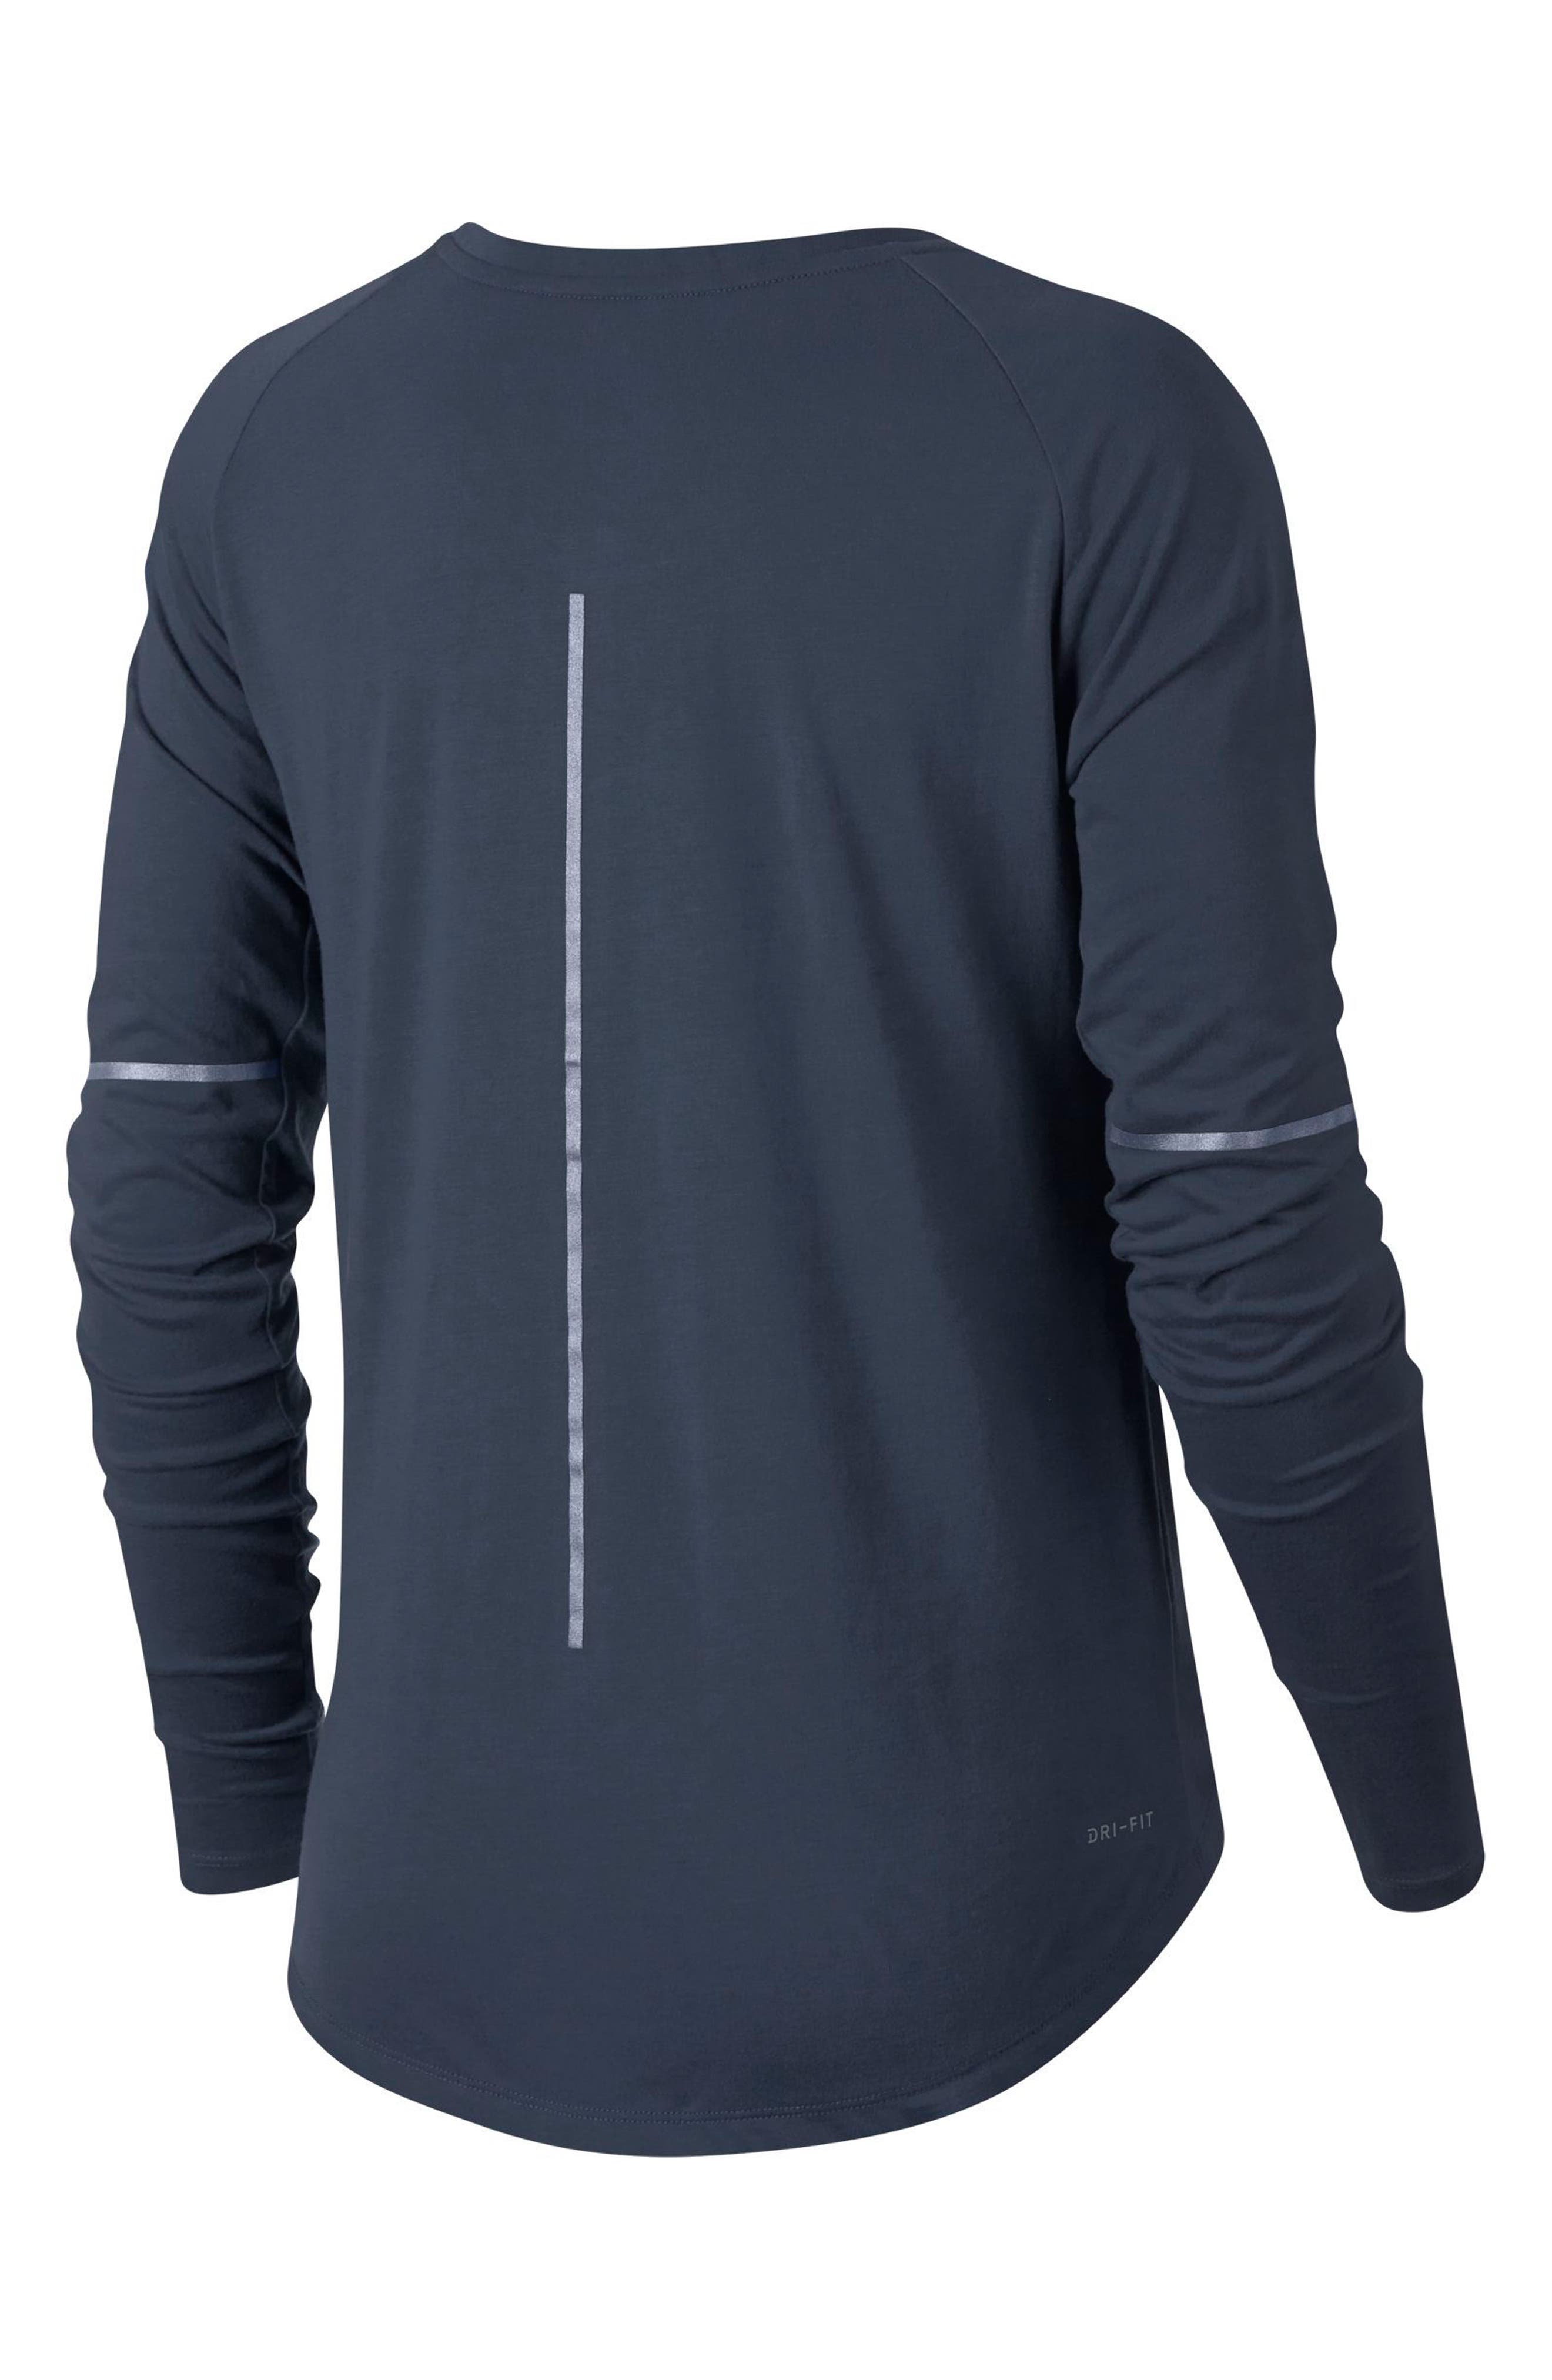 Alternate Image 2  - Nike Breathe Women's Running Top